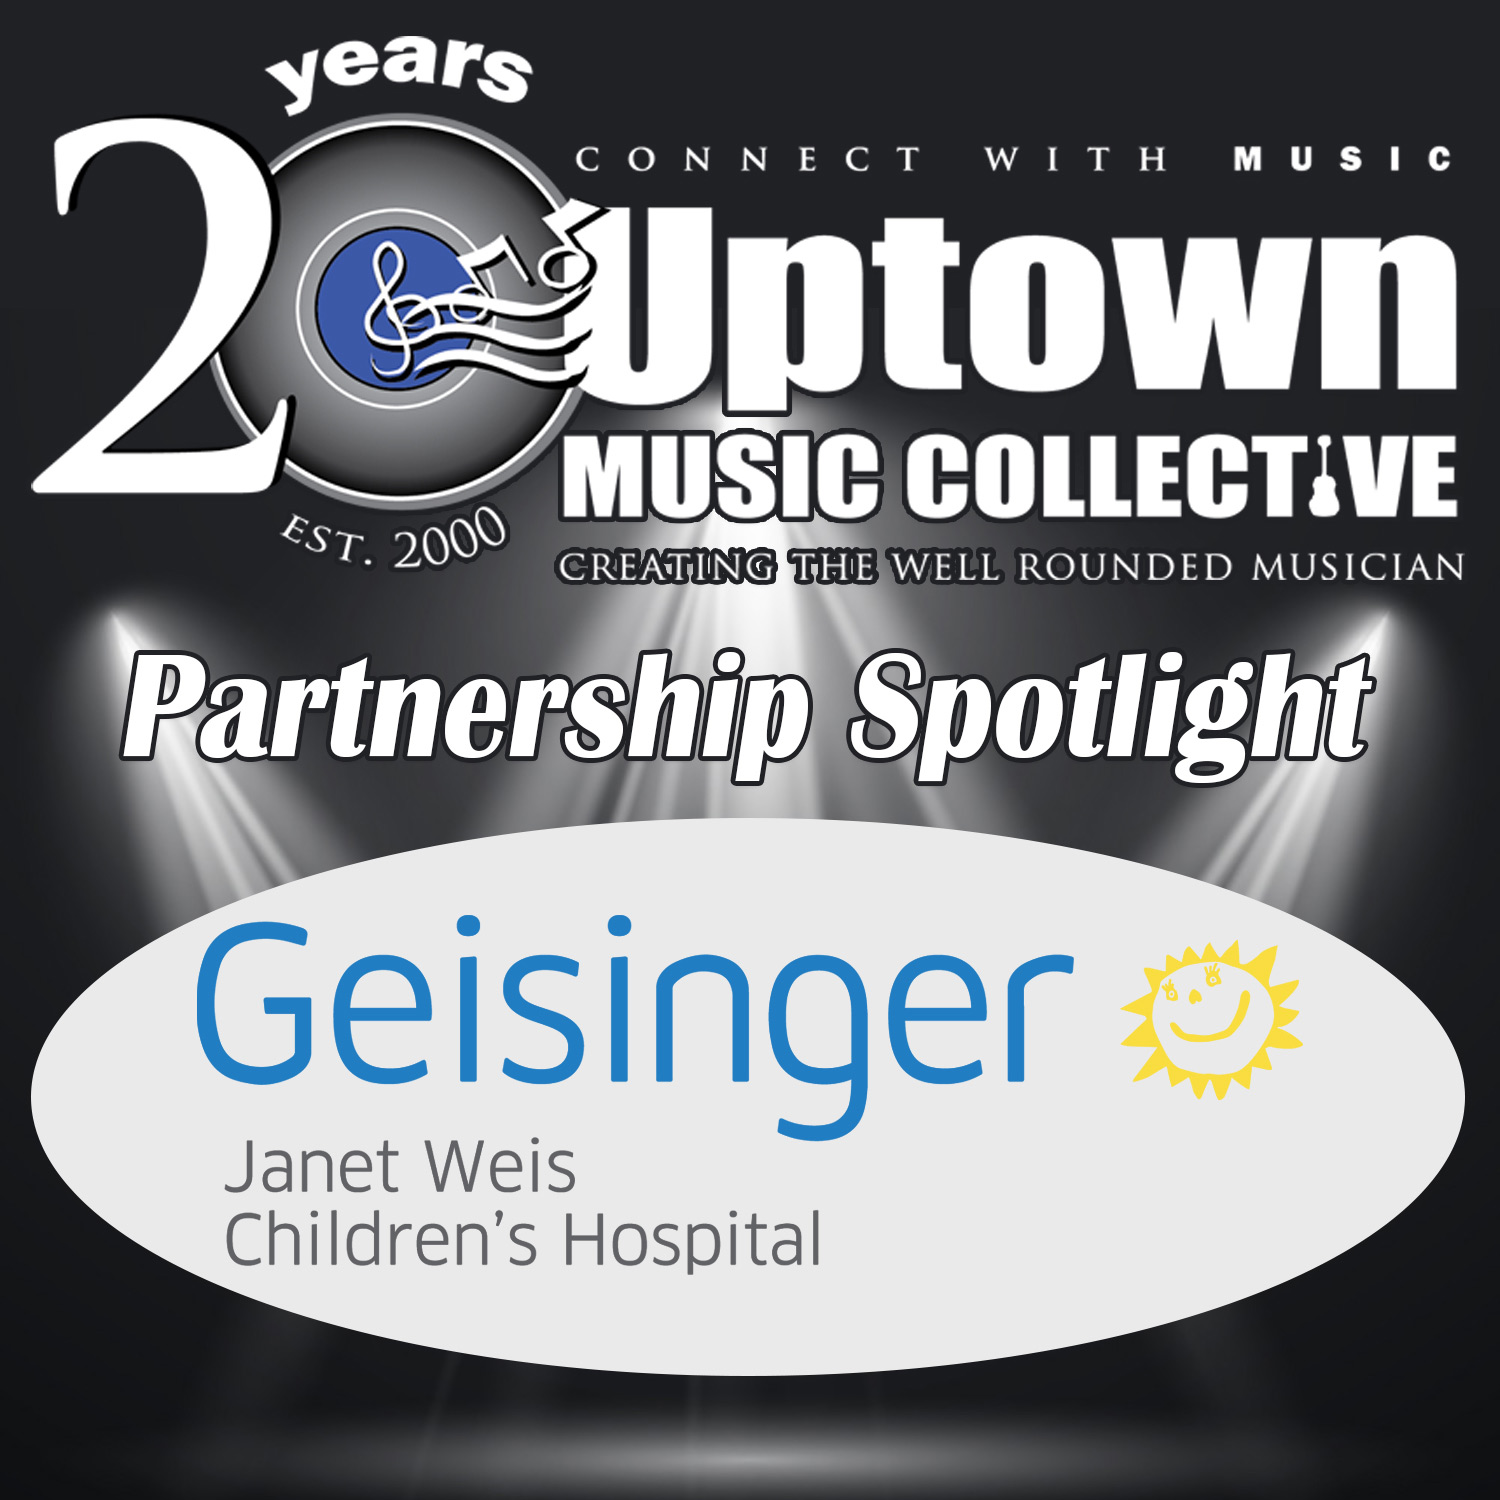 Geisinger Partnership Spotlight